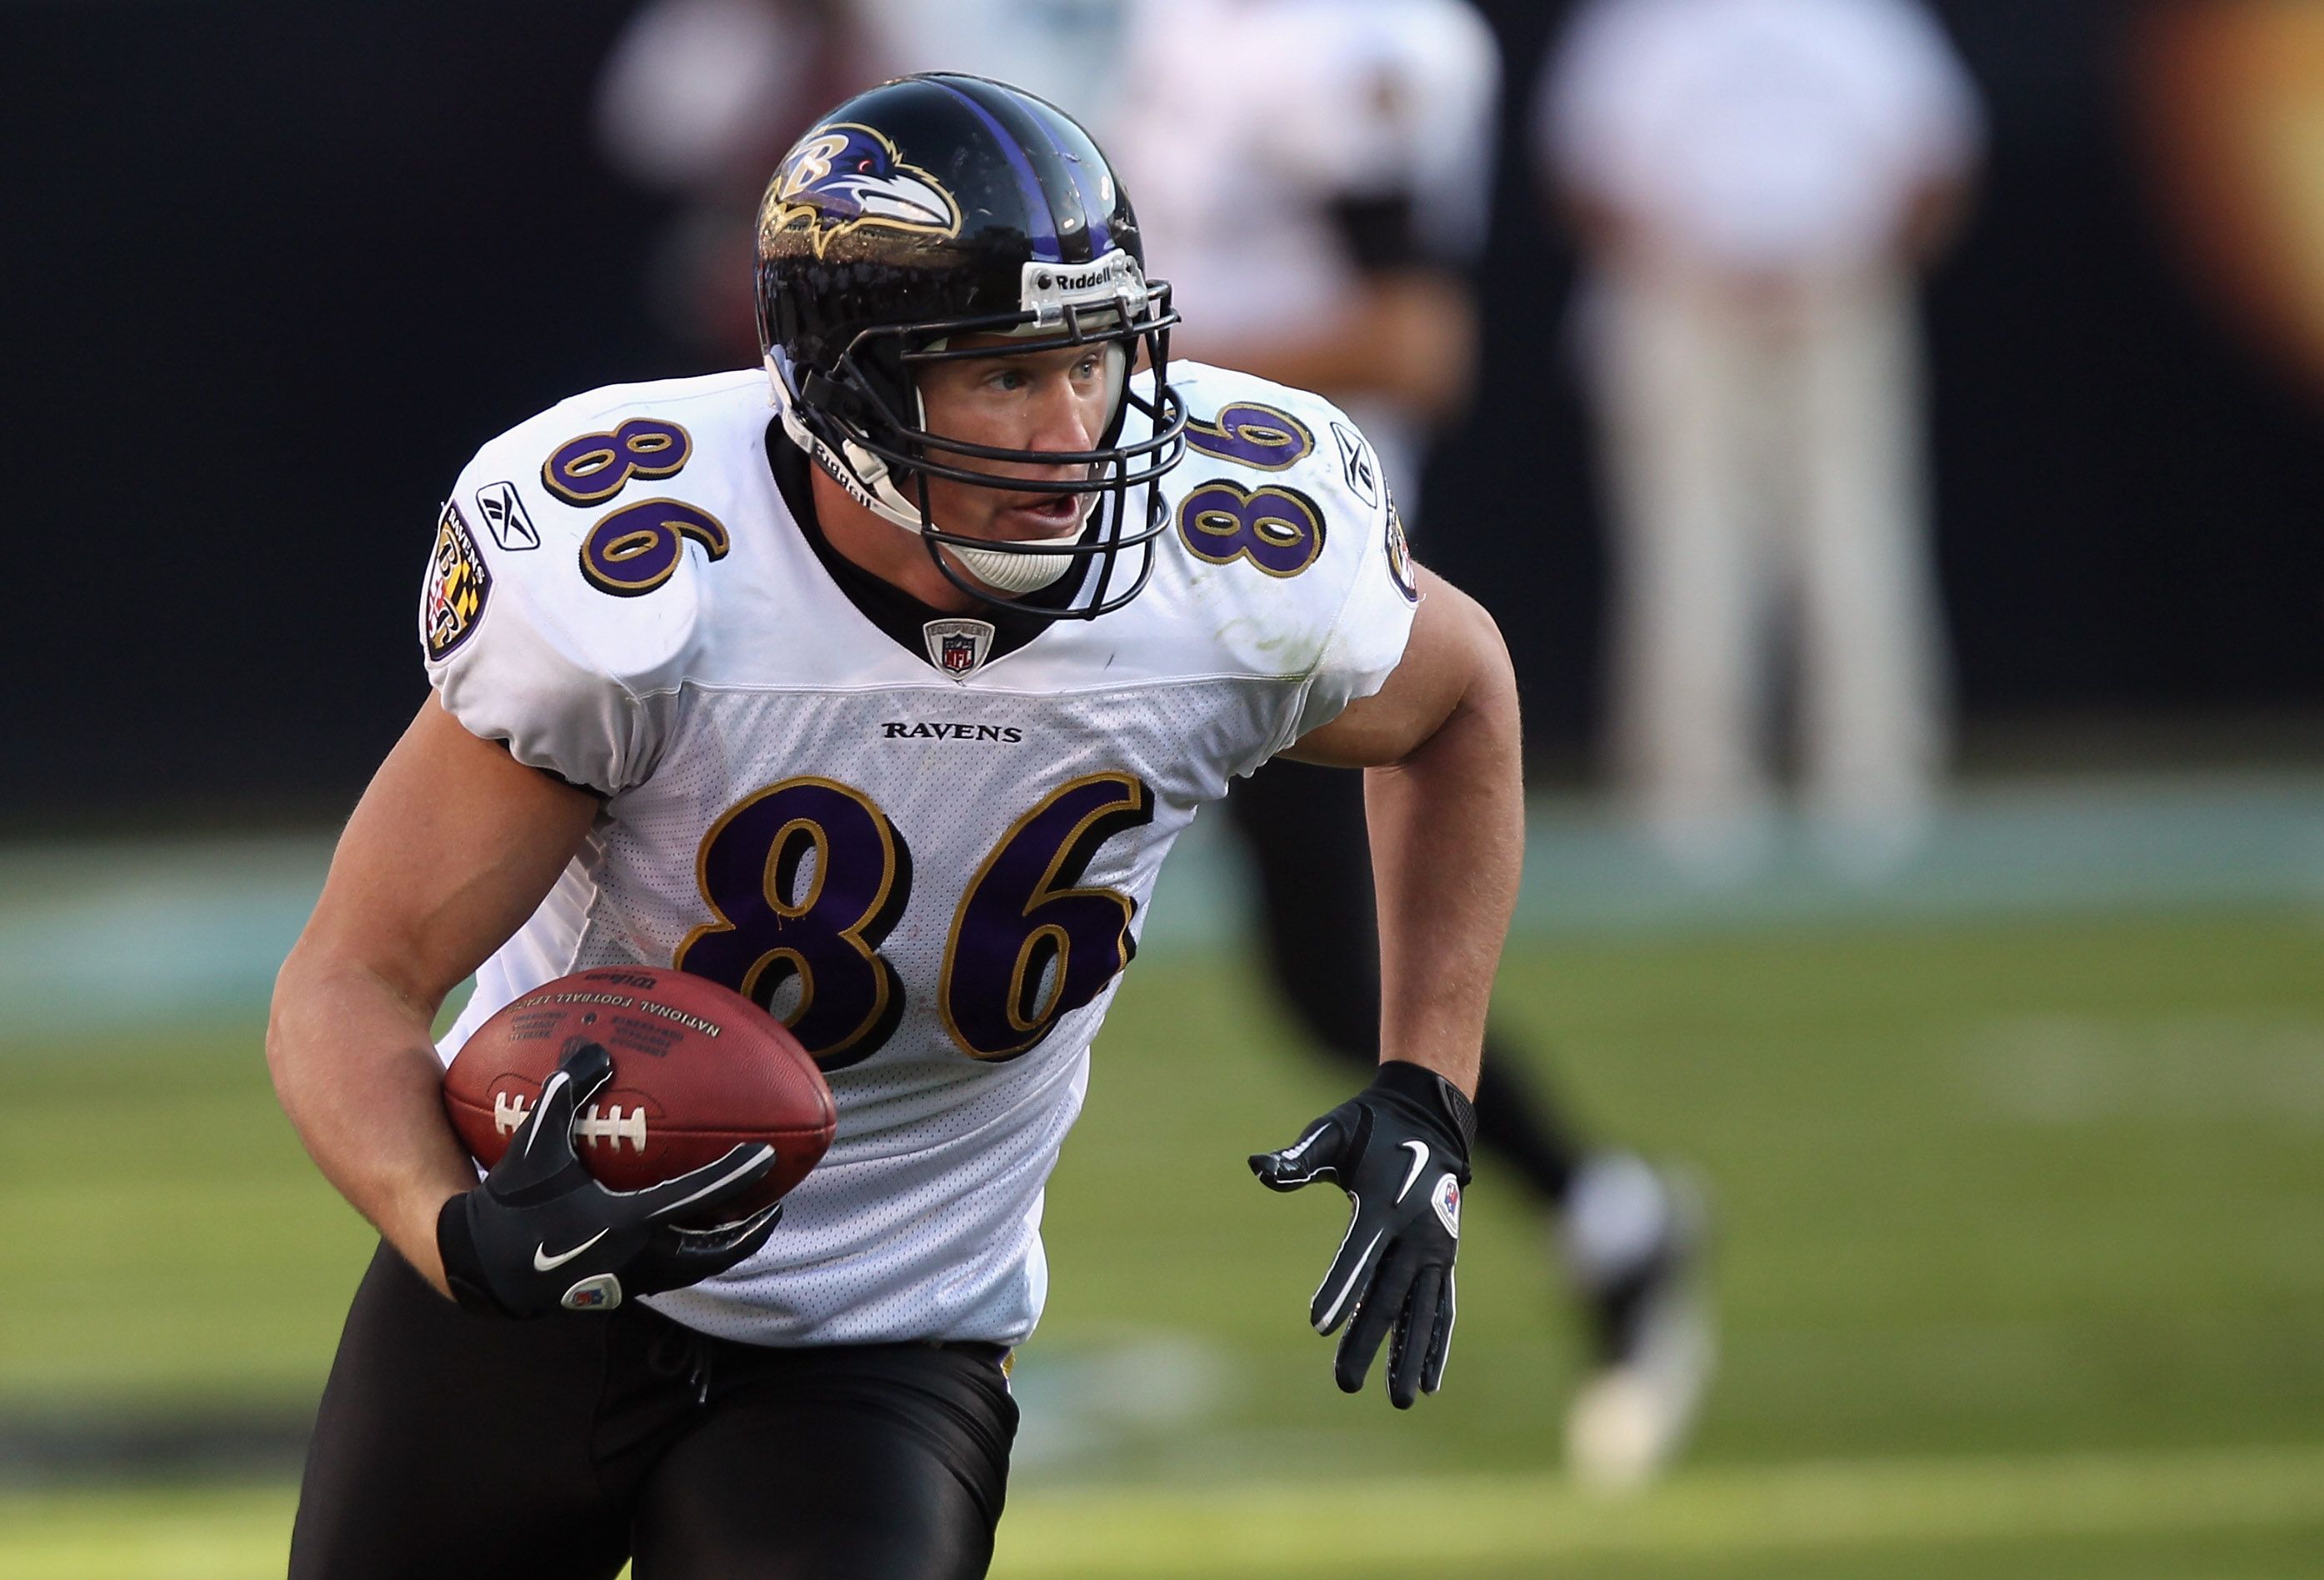 CHARLOTTE, NC - NOVEMBER 21:  Todd Heap #86 of the Baltimore Ravens against the Carolina Panthers at Bank of America Stadium on November 21, 2010 in Charlotte, North Carolina.  (Photo by Streeter Lecka/Getty Images)